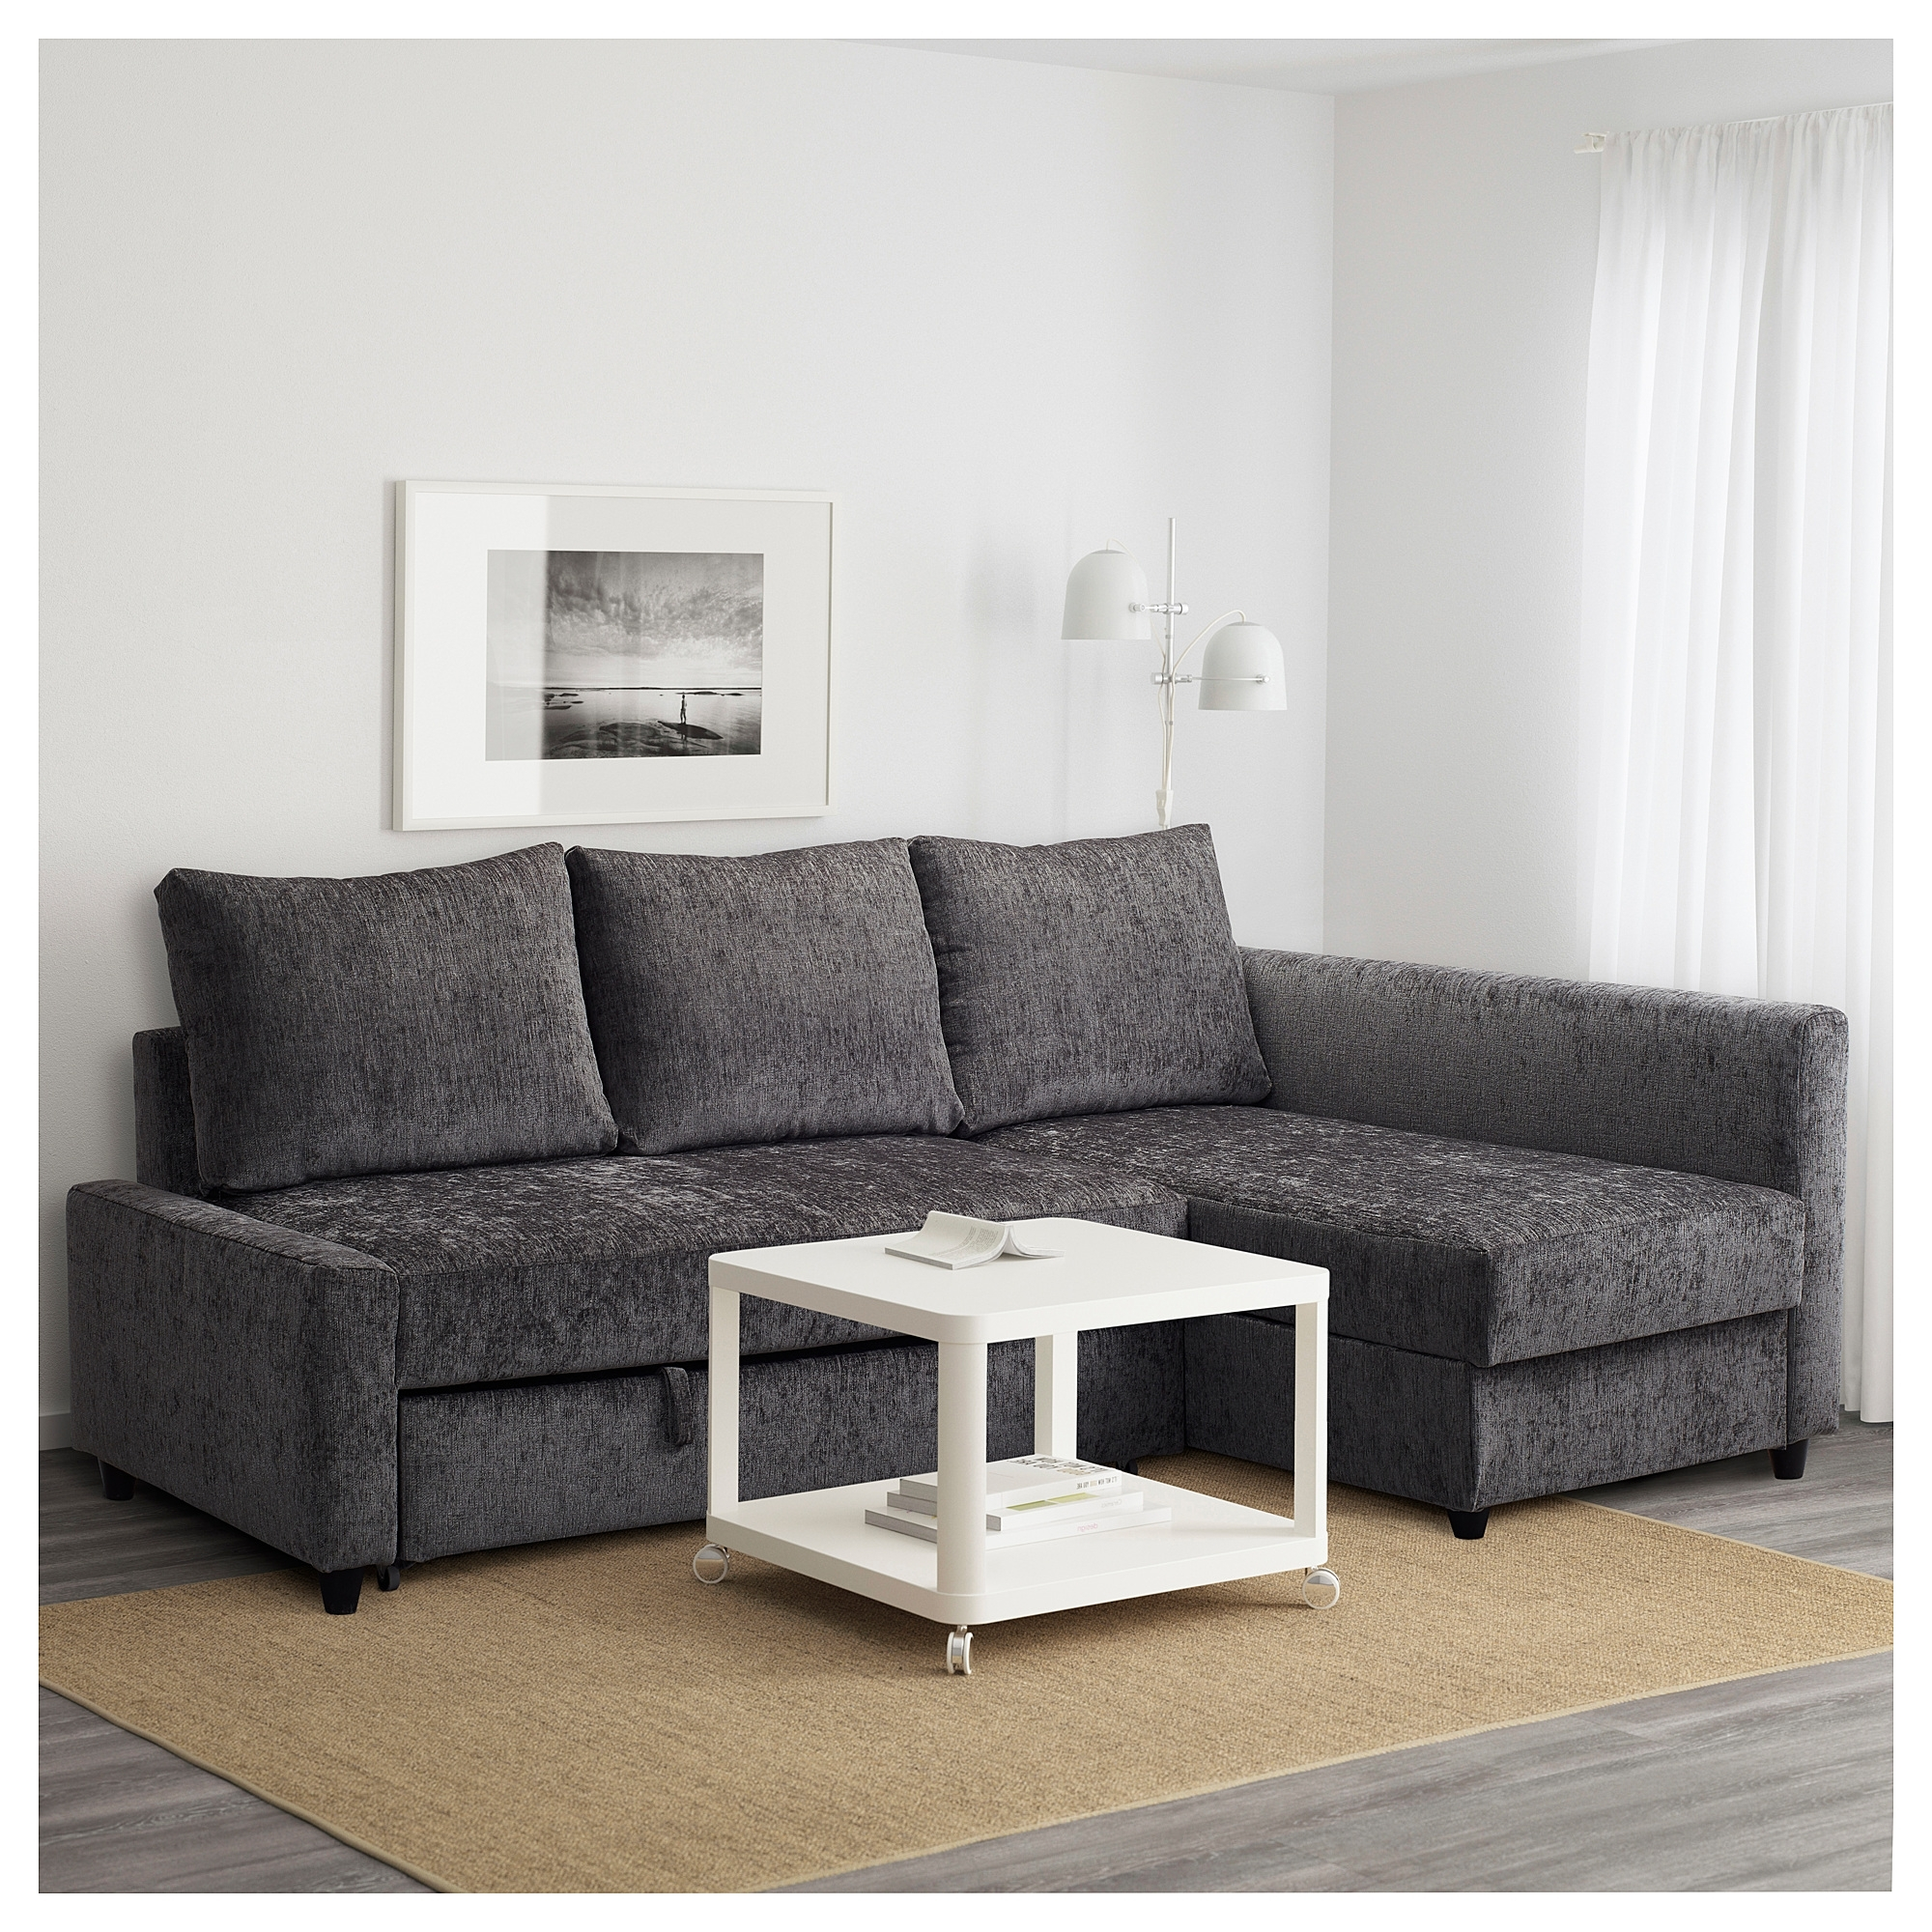 Famous Ikea Corner Sofas With Storage For Friheten Corner Sofa Bed With Storage Dark Grey – Ikea (View 2 of 15)